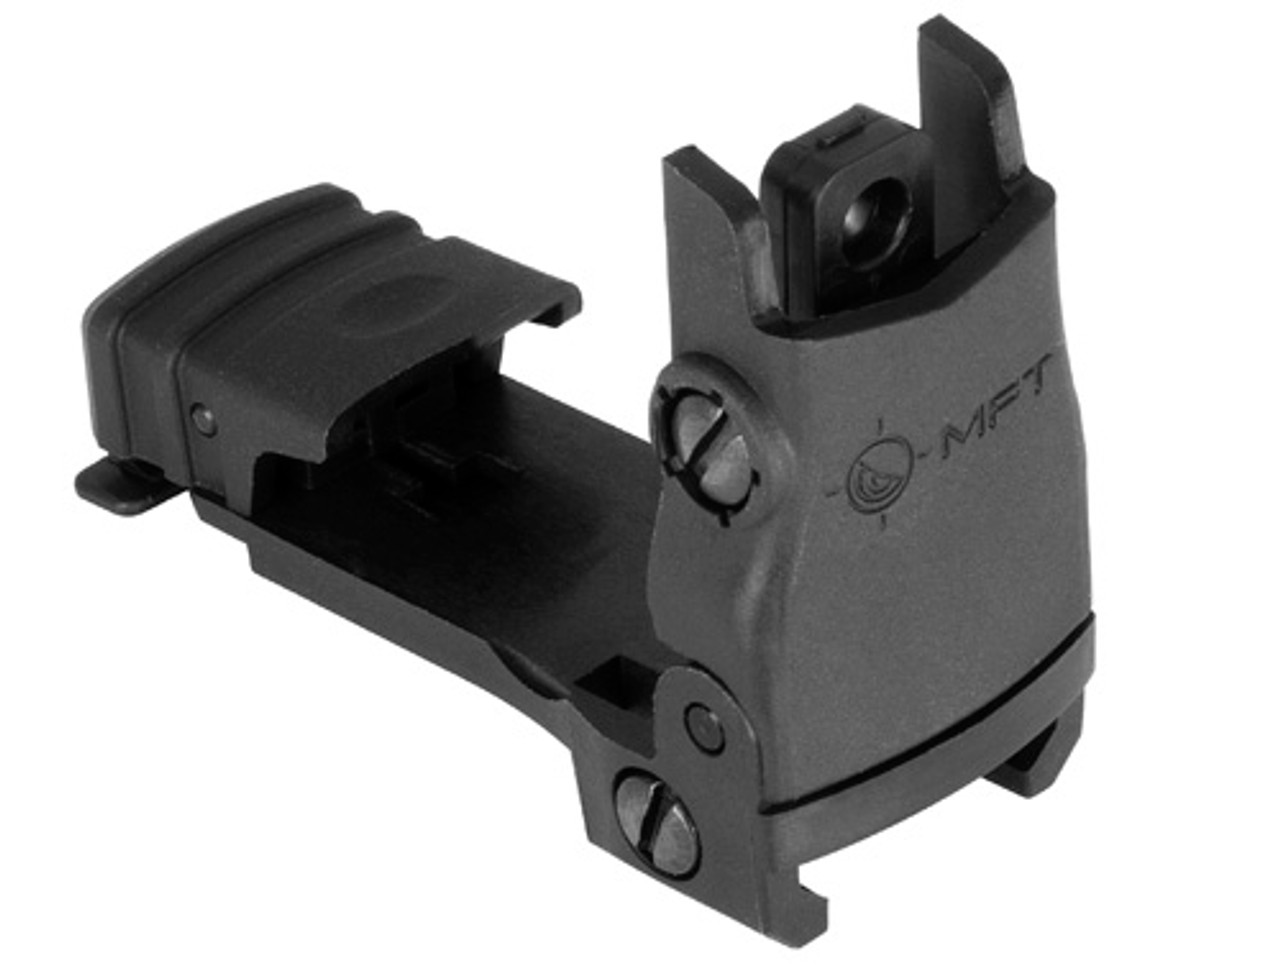 Mission First Tactical - Rear Back up Sight